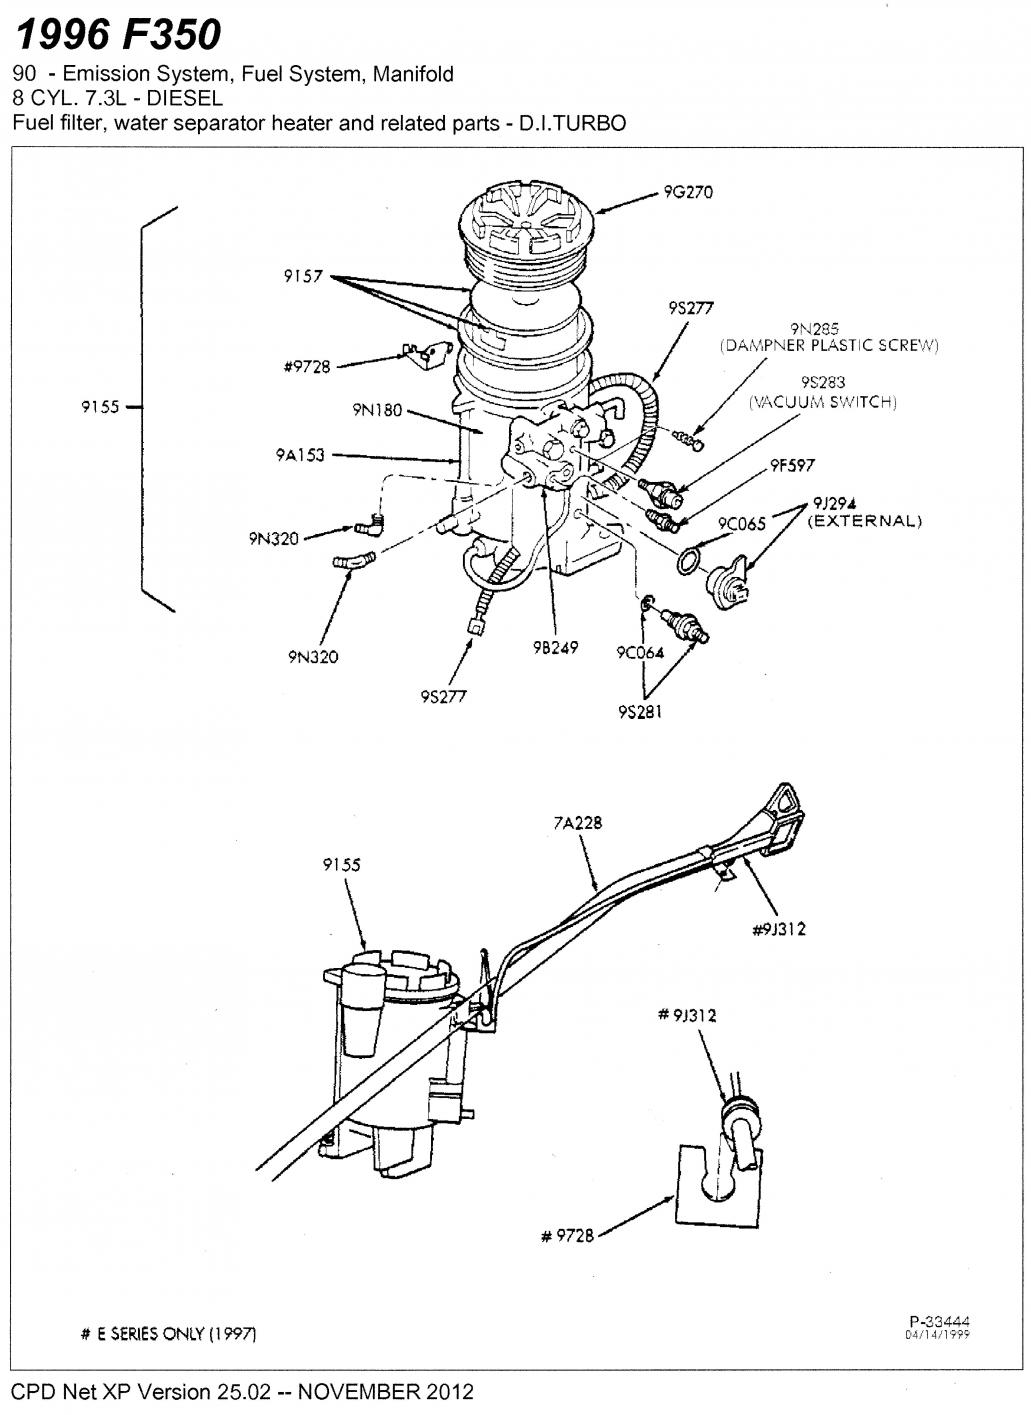 2006 ford f 250 diesel fuel filter location